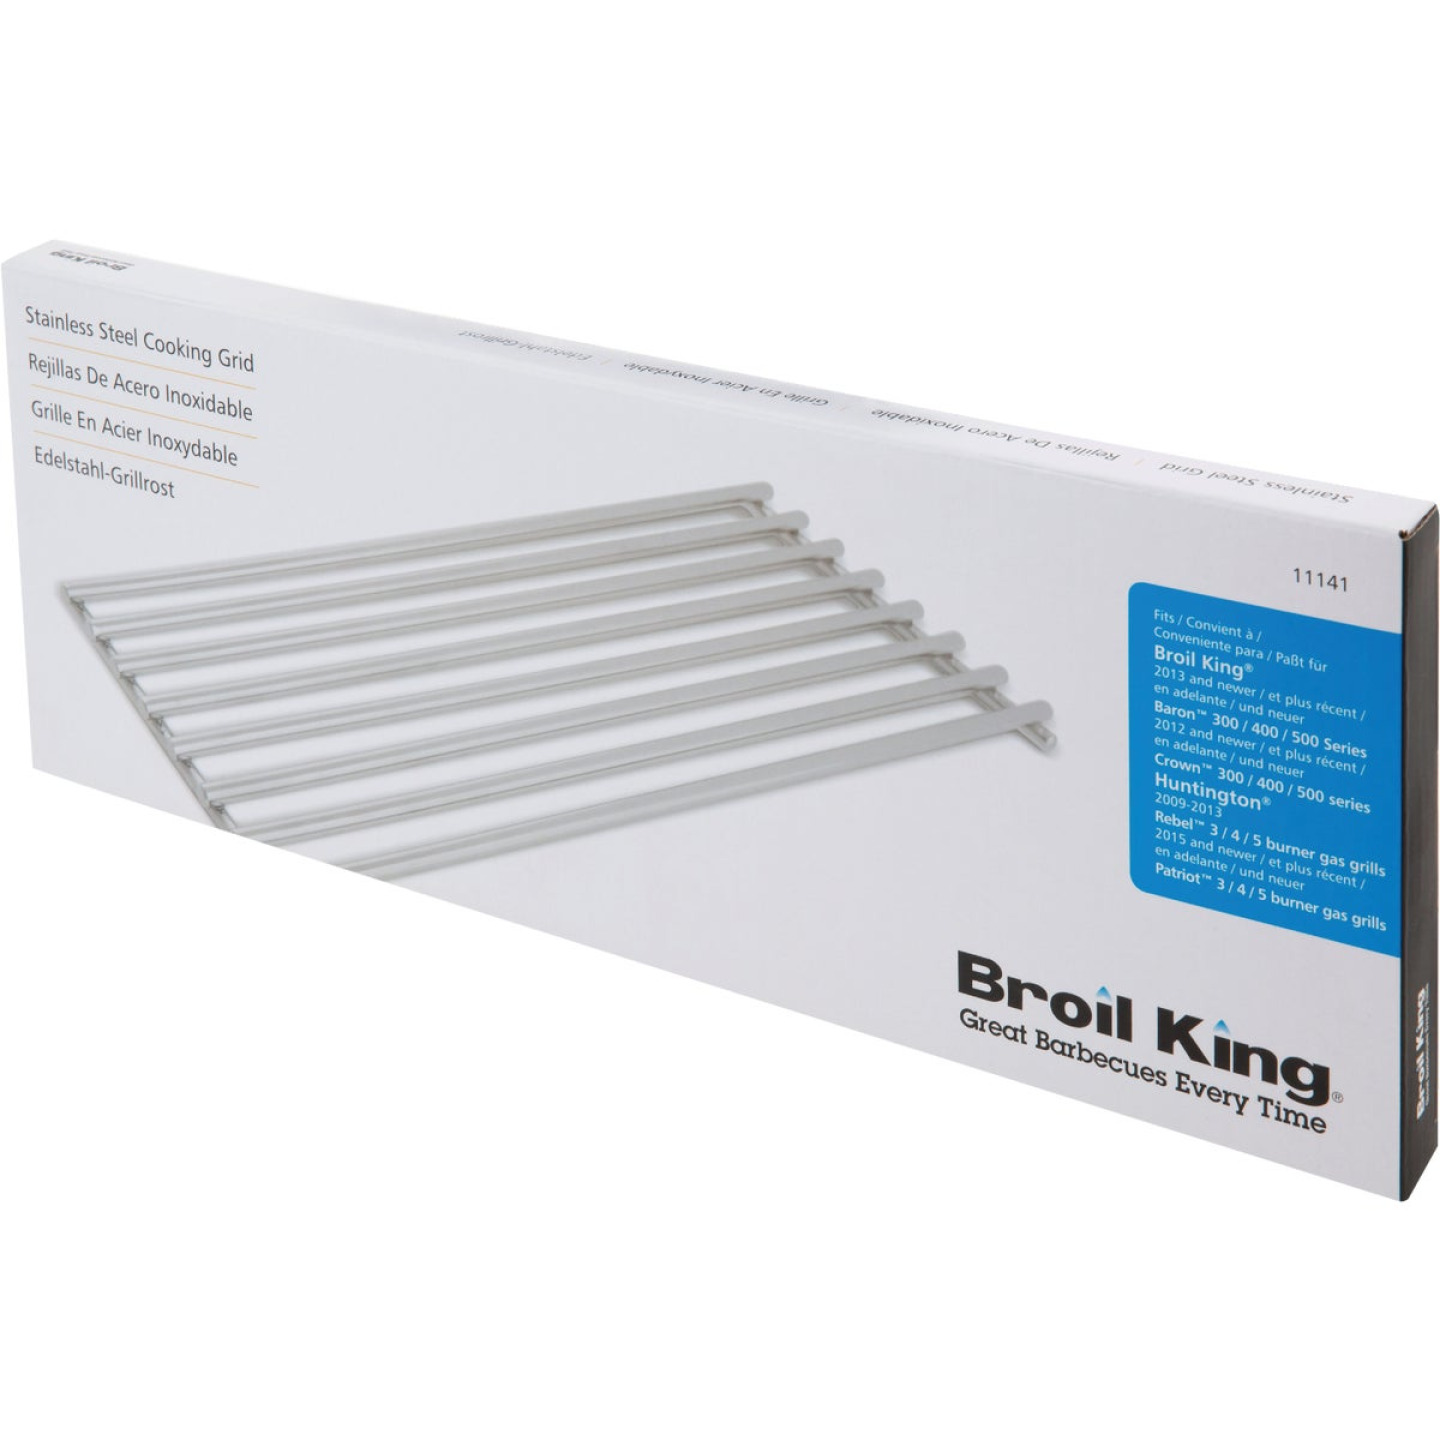 Broil King 6.3 In. x 17.4 In. Stainless Steel Cooking Grid Image 2